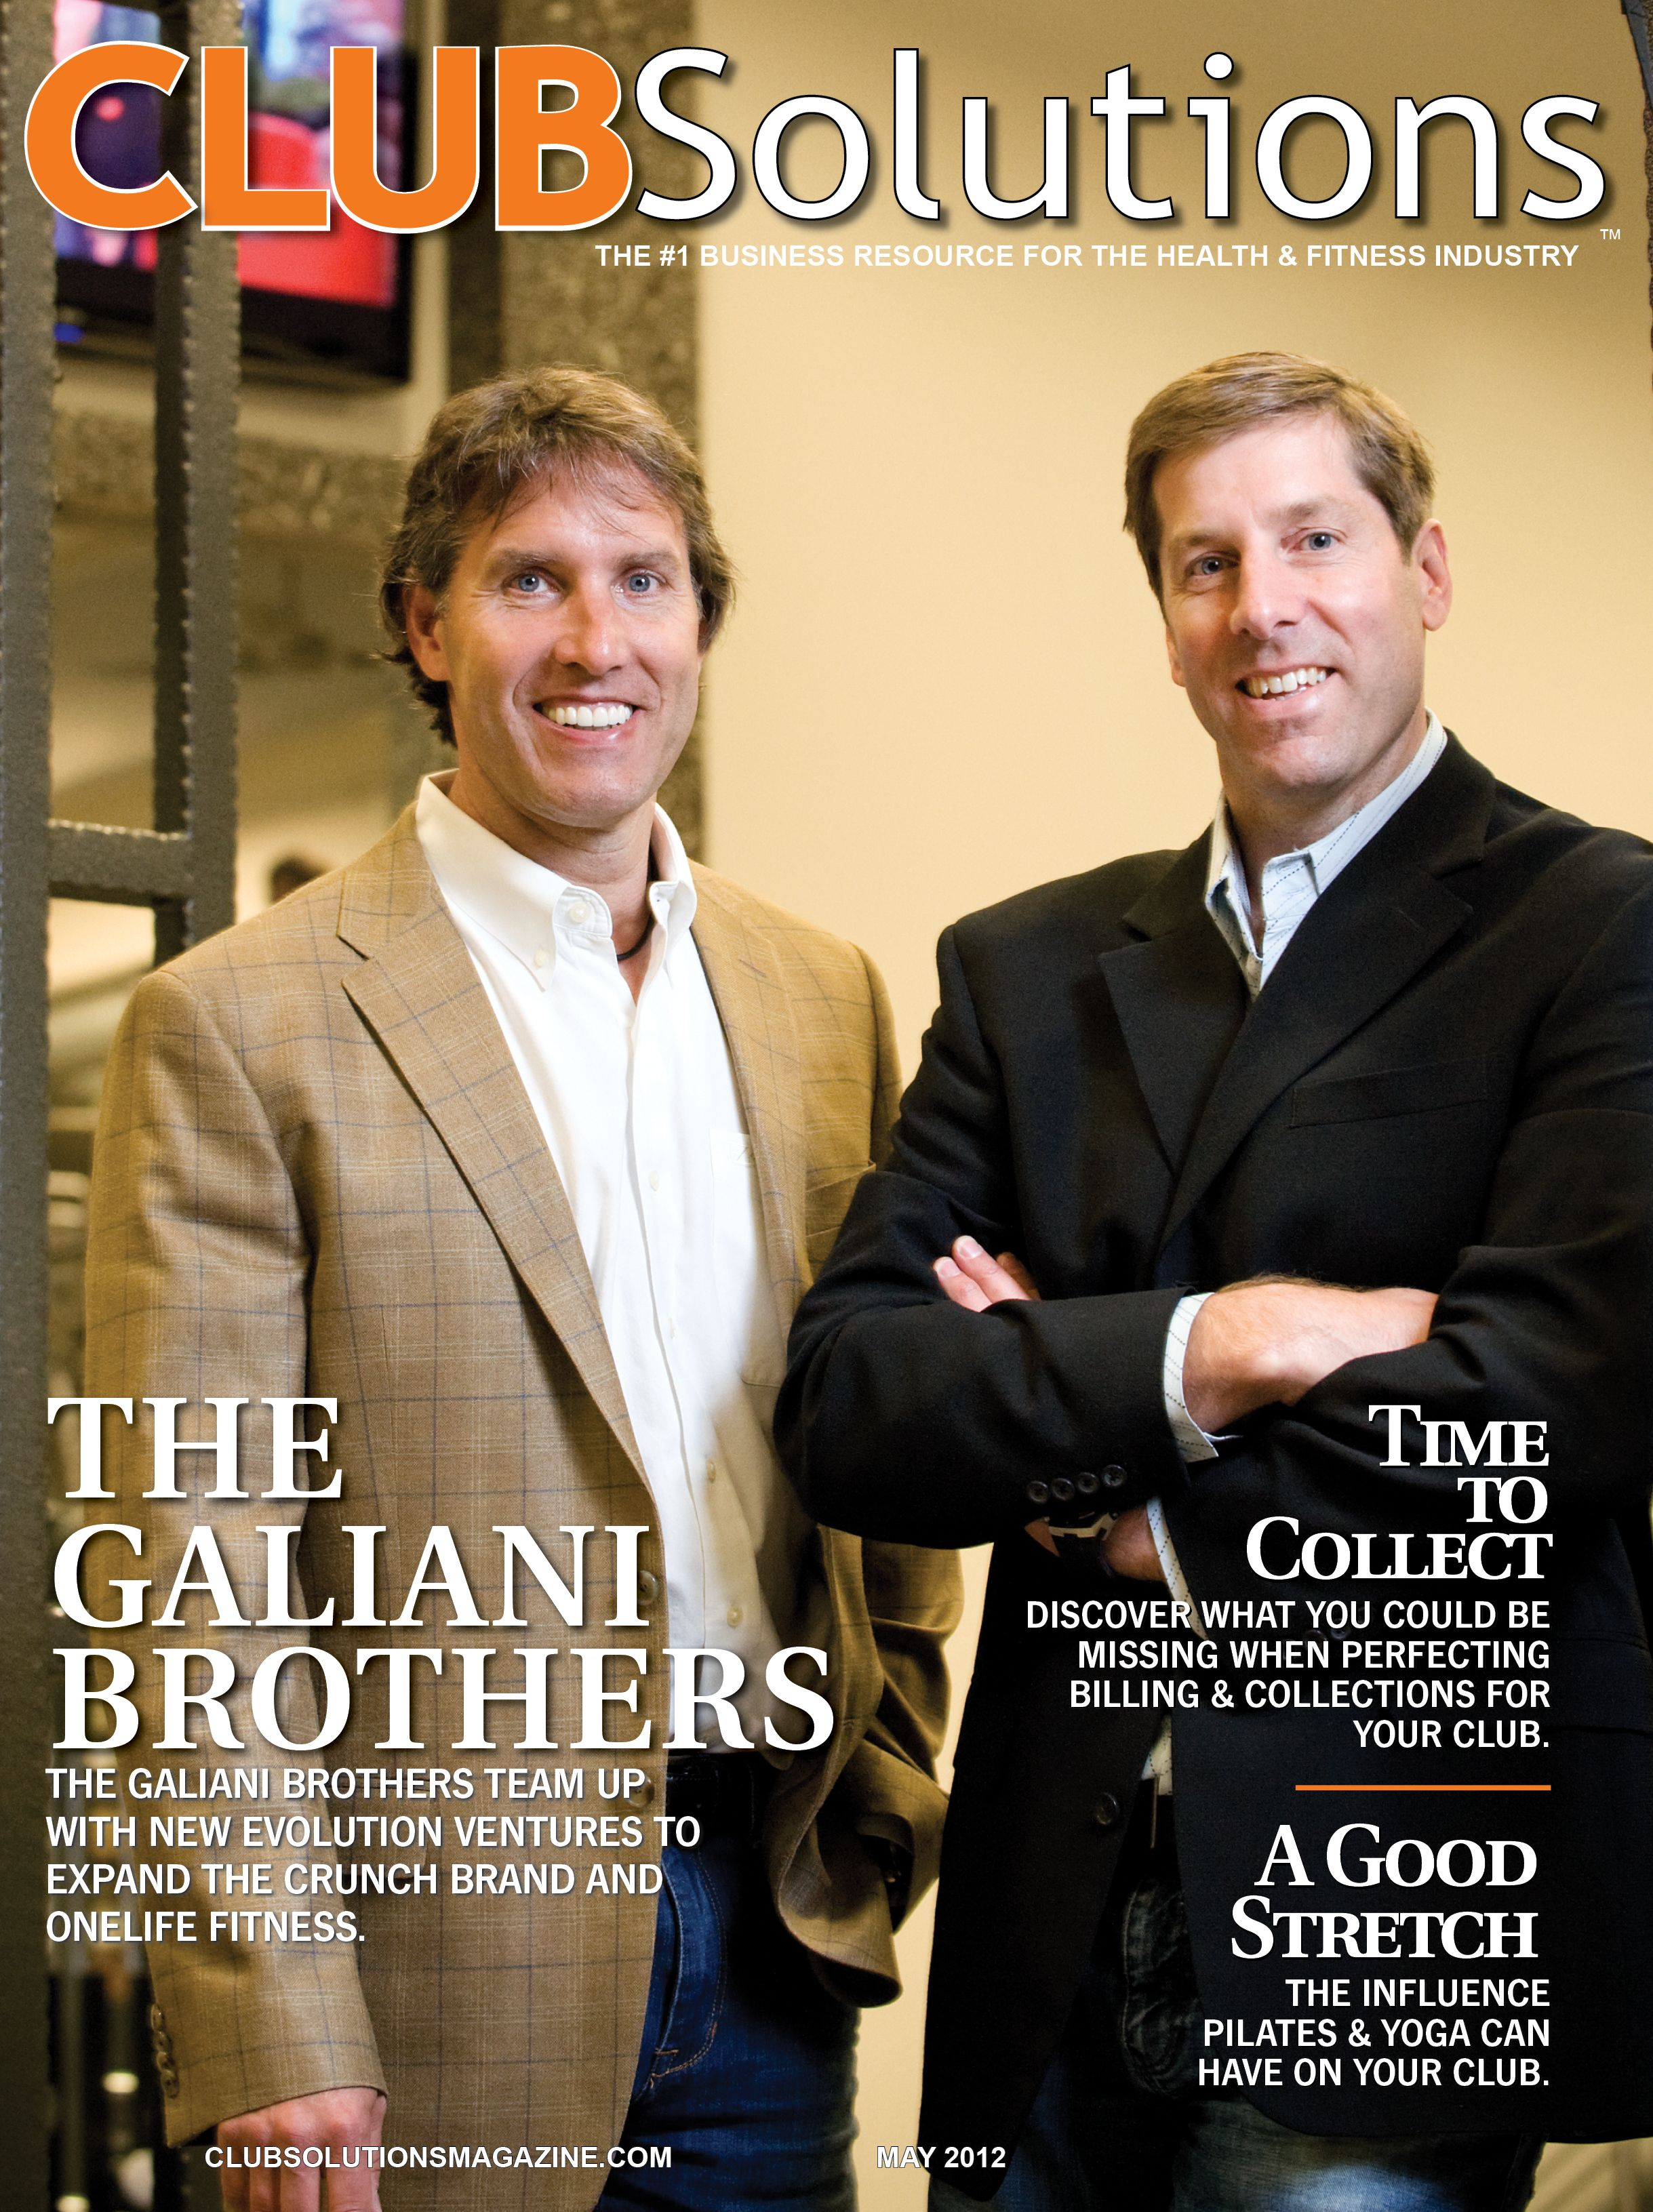 John and kirk galiani the owners of onelife fitness may